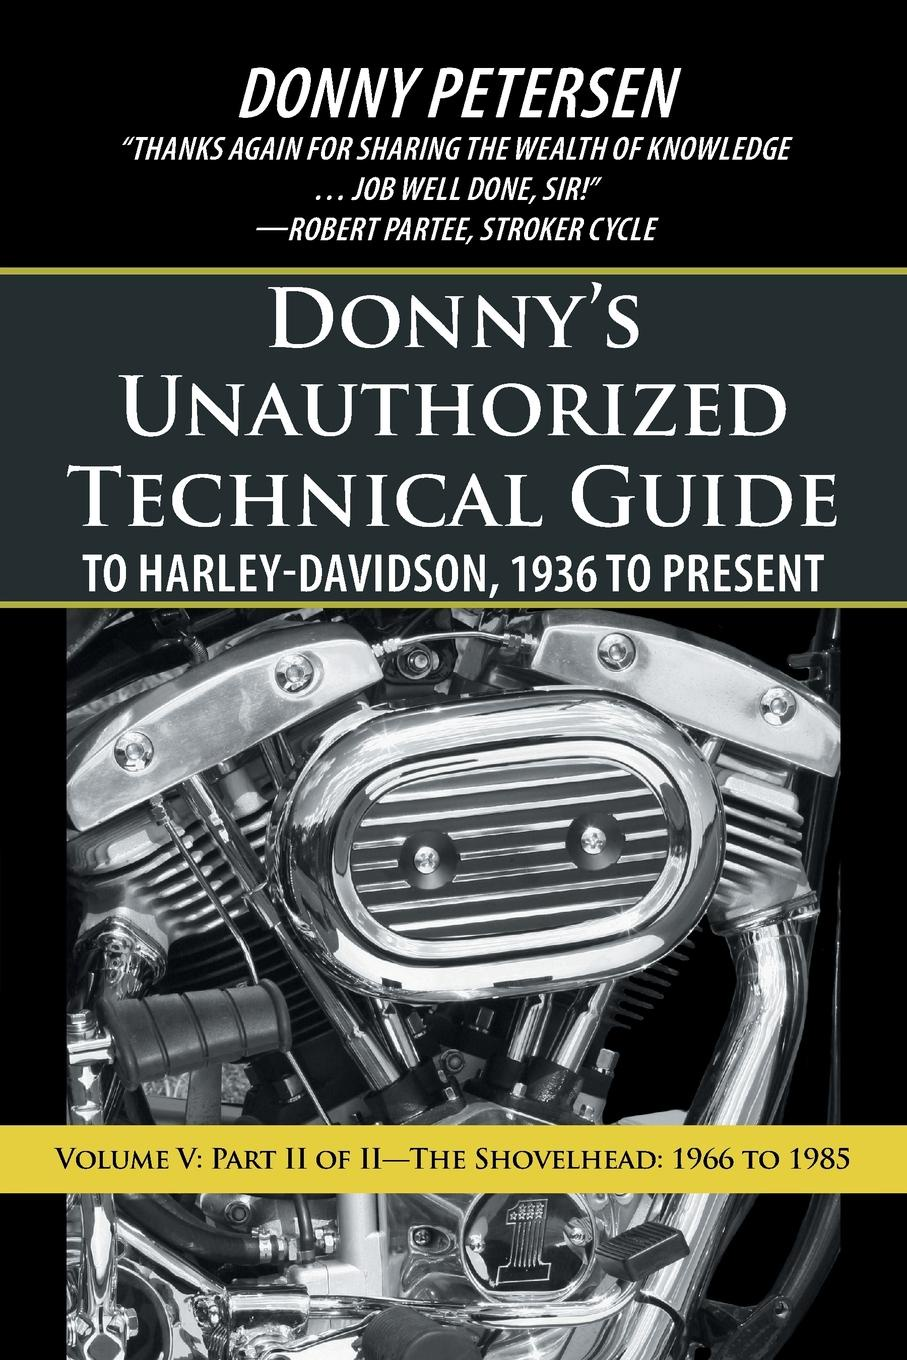 Donny Petersen Donny.s Unauthorized Technical Guide to Harley-Davidson, 1936 to Present. Volume V: Part II of II-The Shovelhead: 1966 to 1985